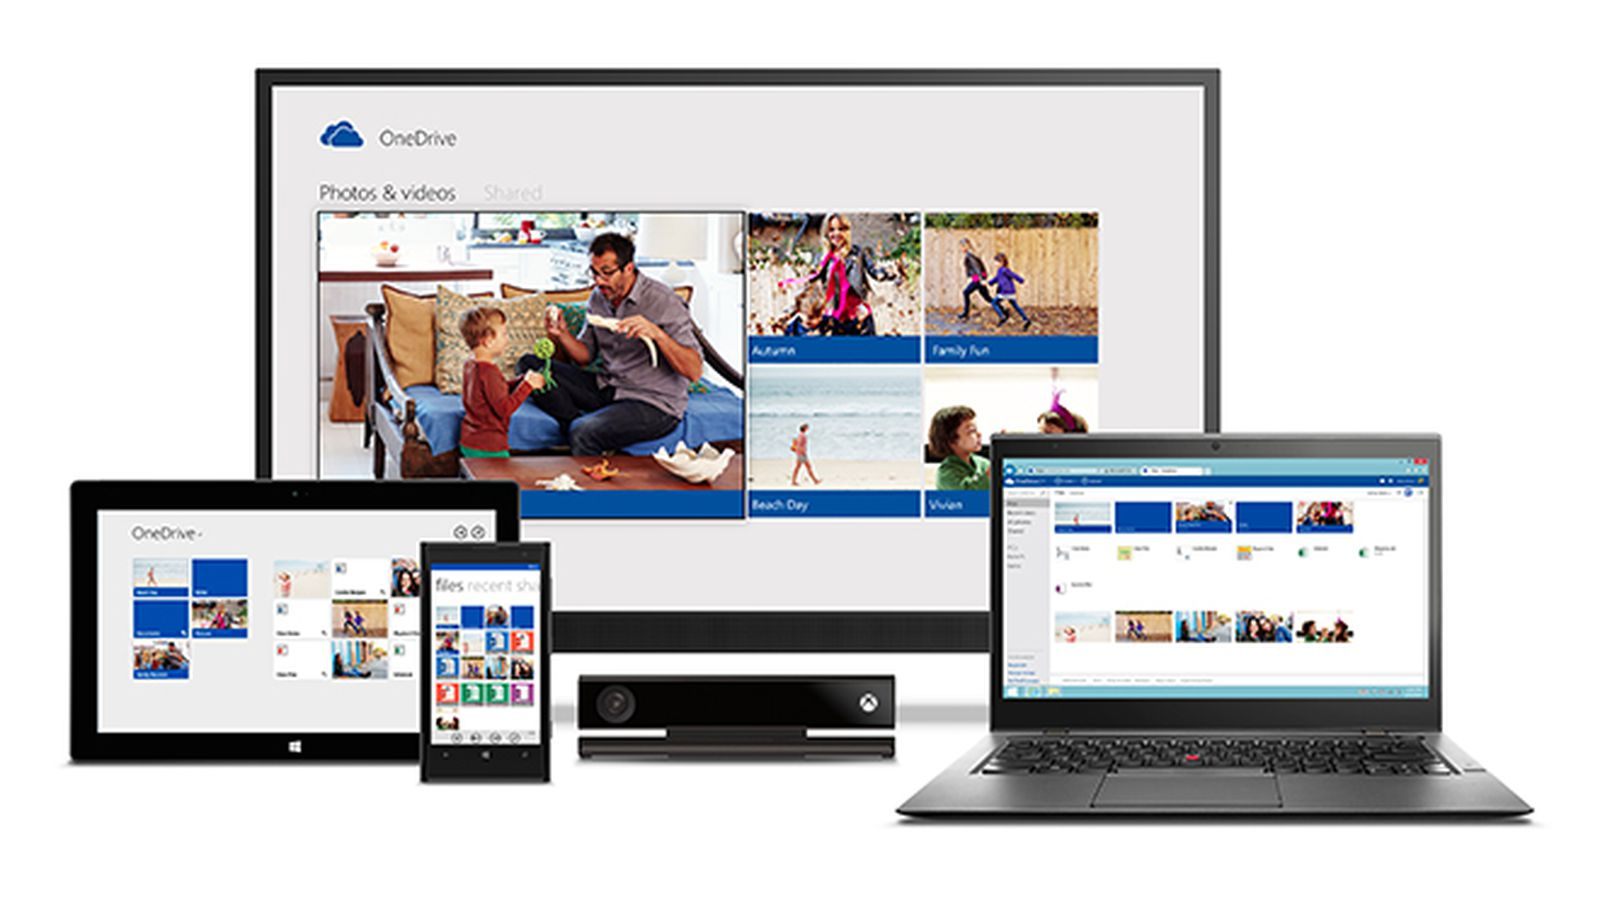 OneDrive for Windows 10 is now touch-friendly thanks to new universal app | The Verge